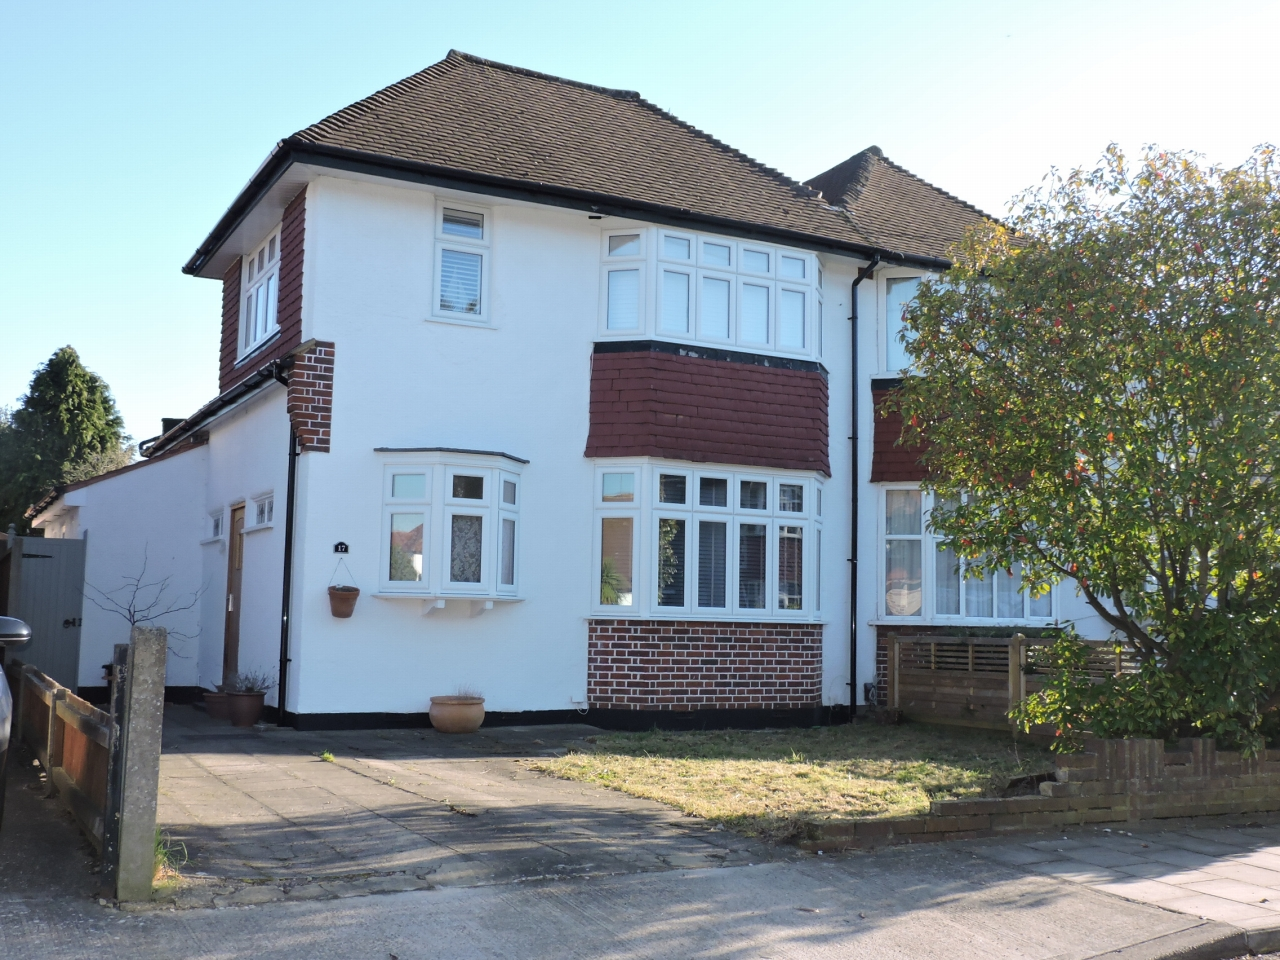 3 bedroom semi-detached house SSTC in New Malden - Photograph 1